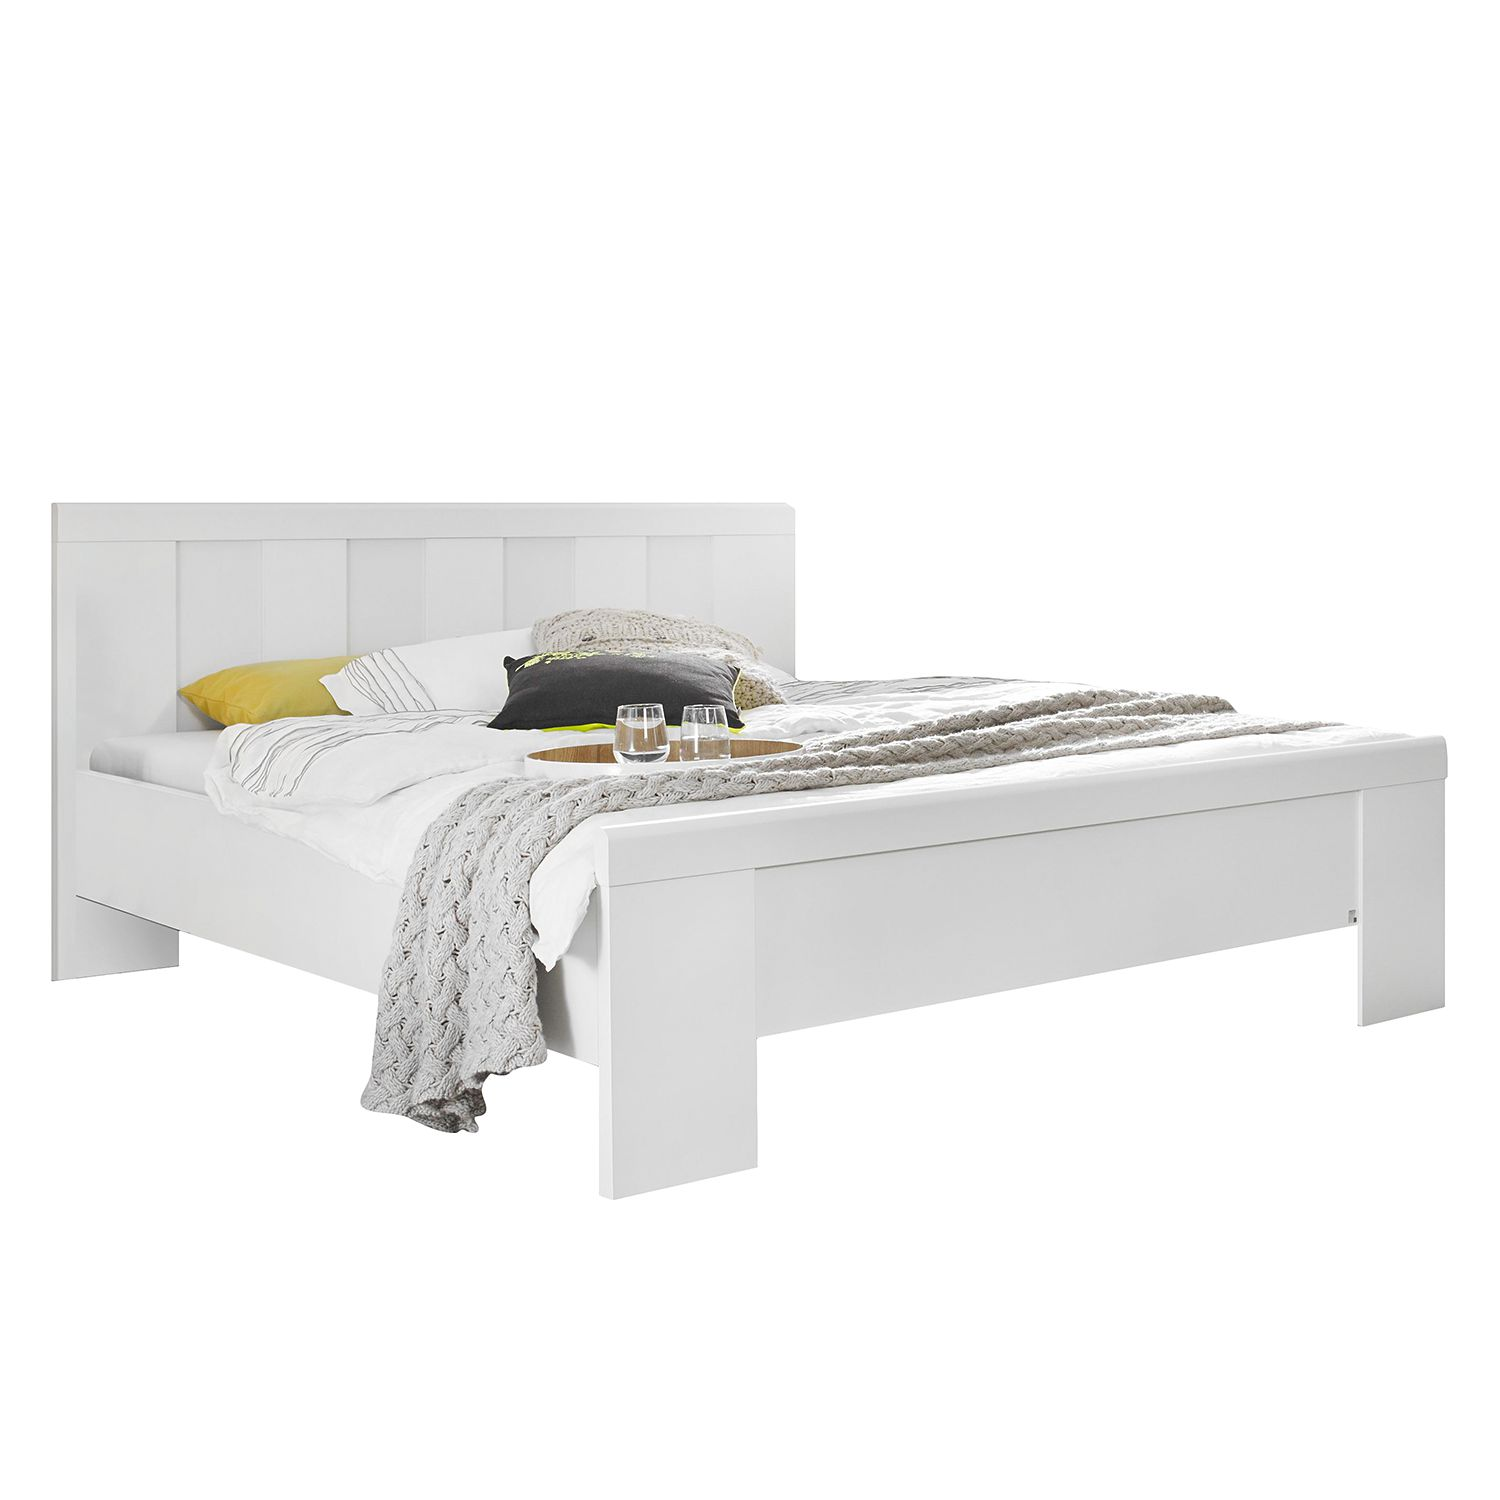 Bed Agnetha - alpinewit - 180 x 200cm - Geen bedlade, Rauch Select